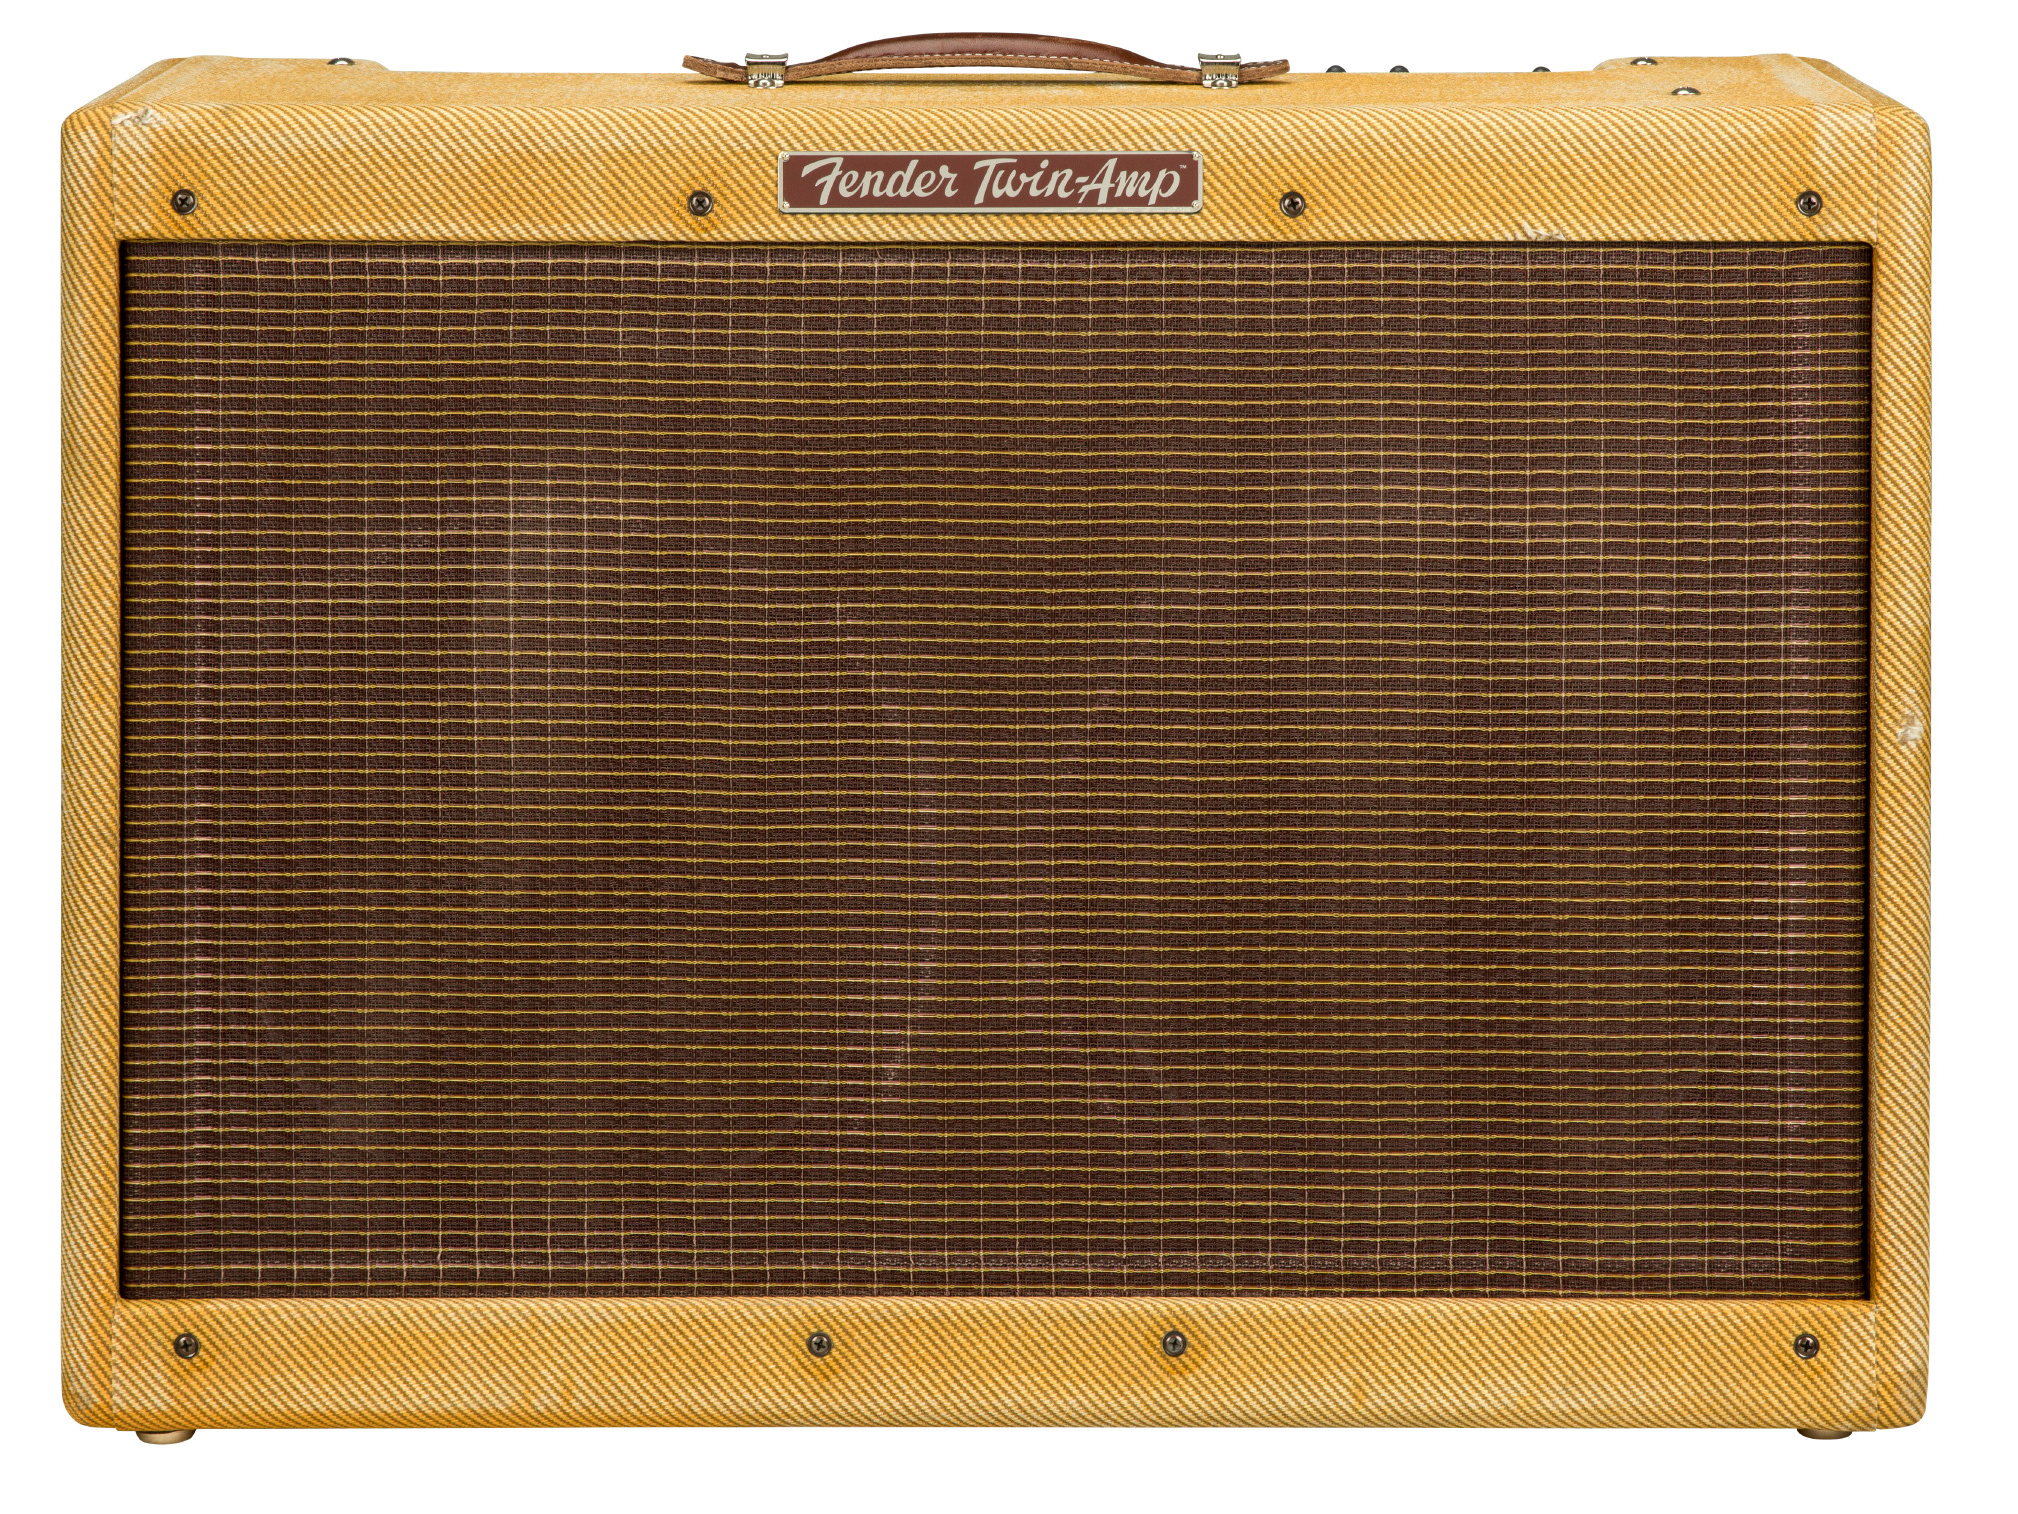 Fender '59 Twin Amp JB